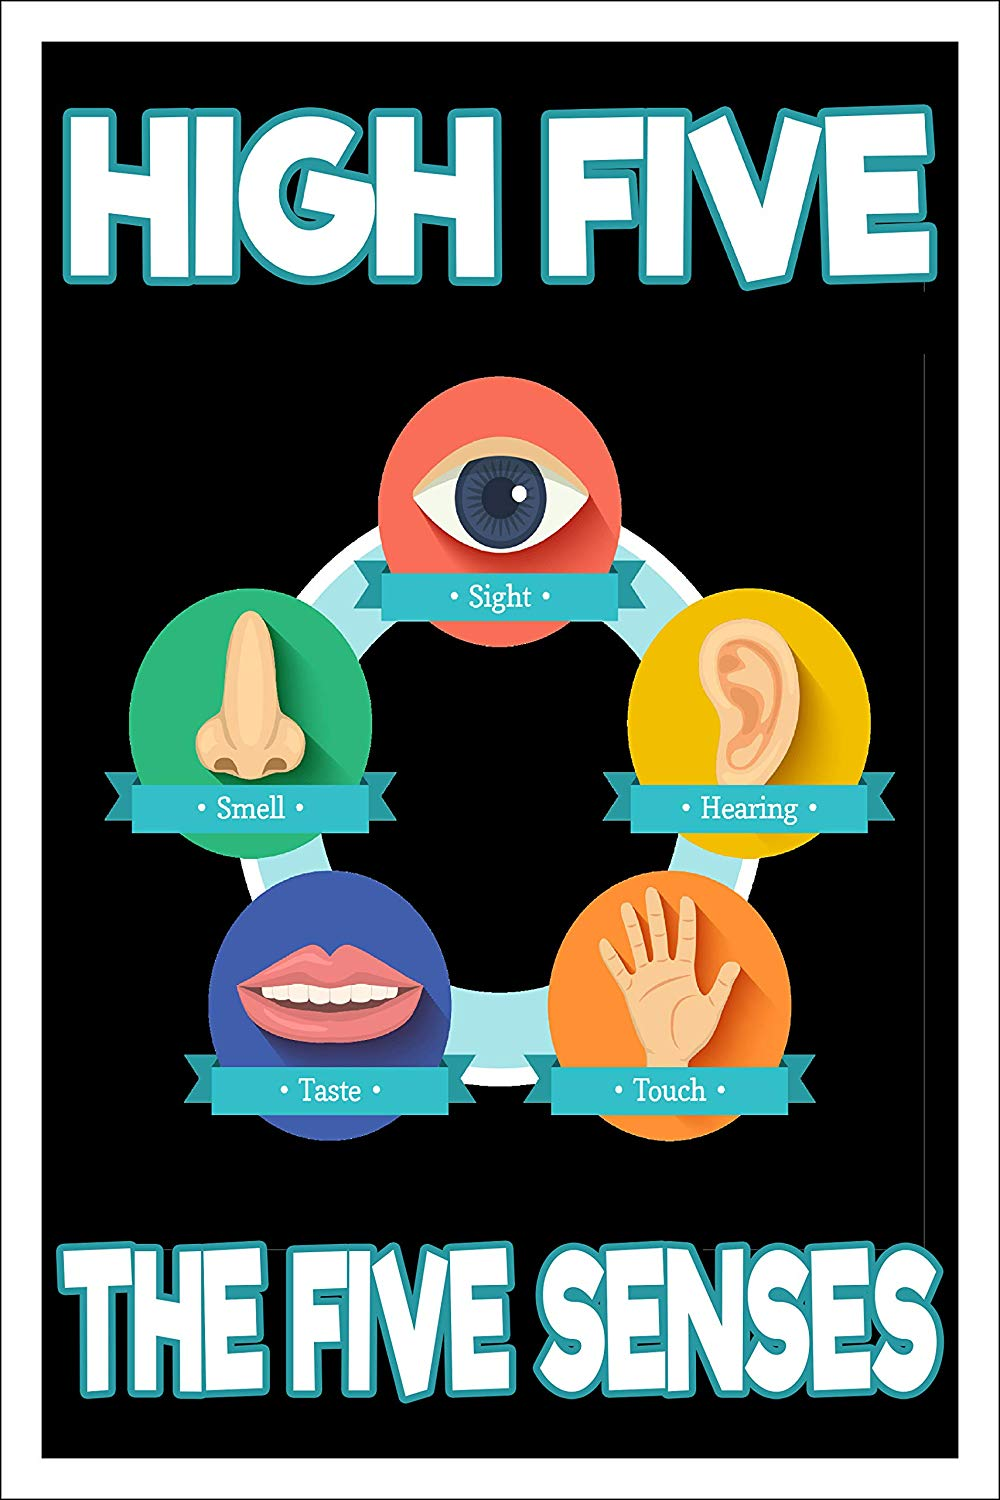 "Spitzy's High Five - The Five Senses - Funny Elementary School Teacher Poster (12"" x 18"" Dimensions Include a White .5"" Border)"